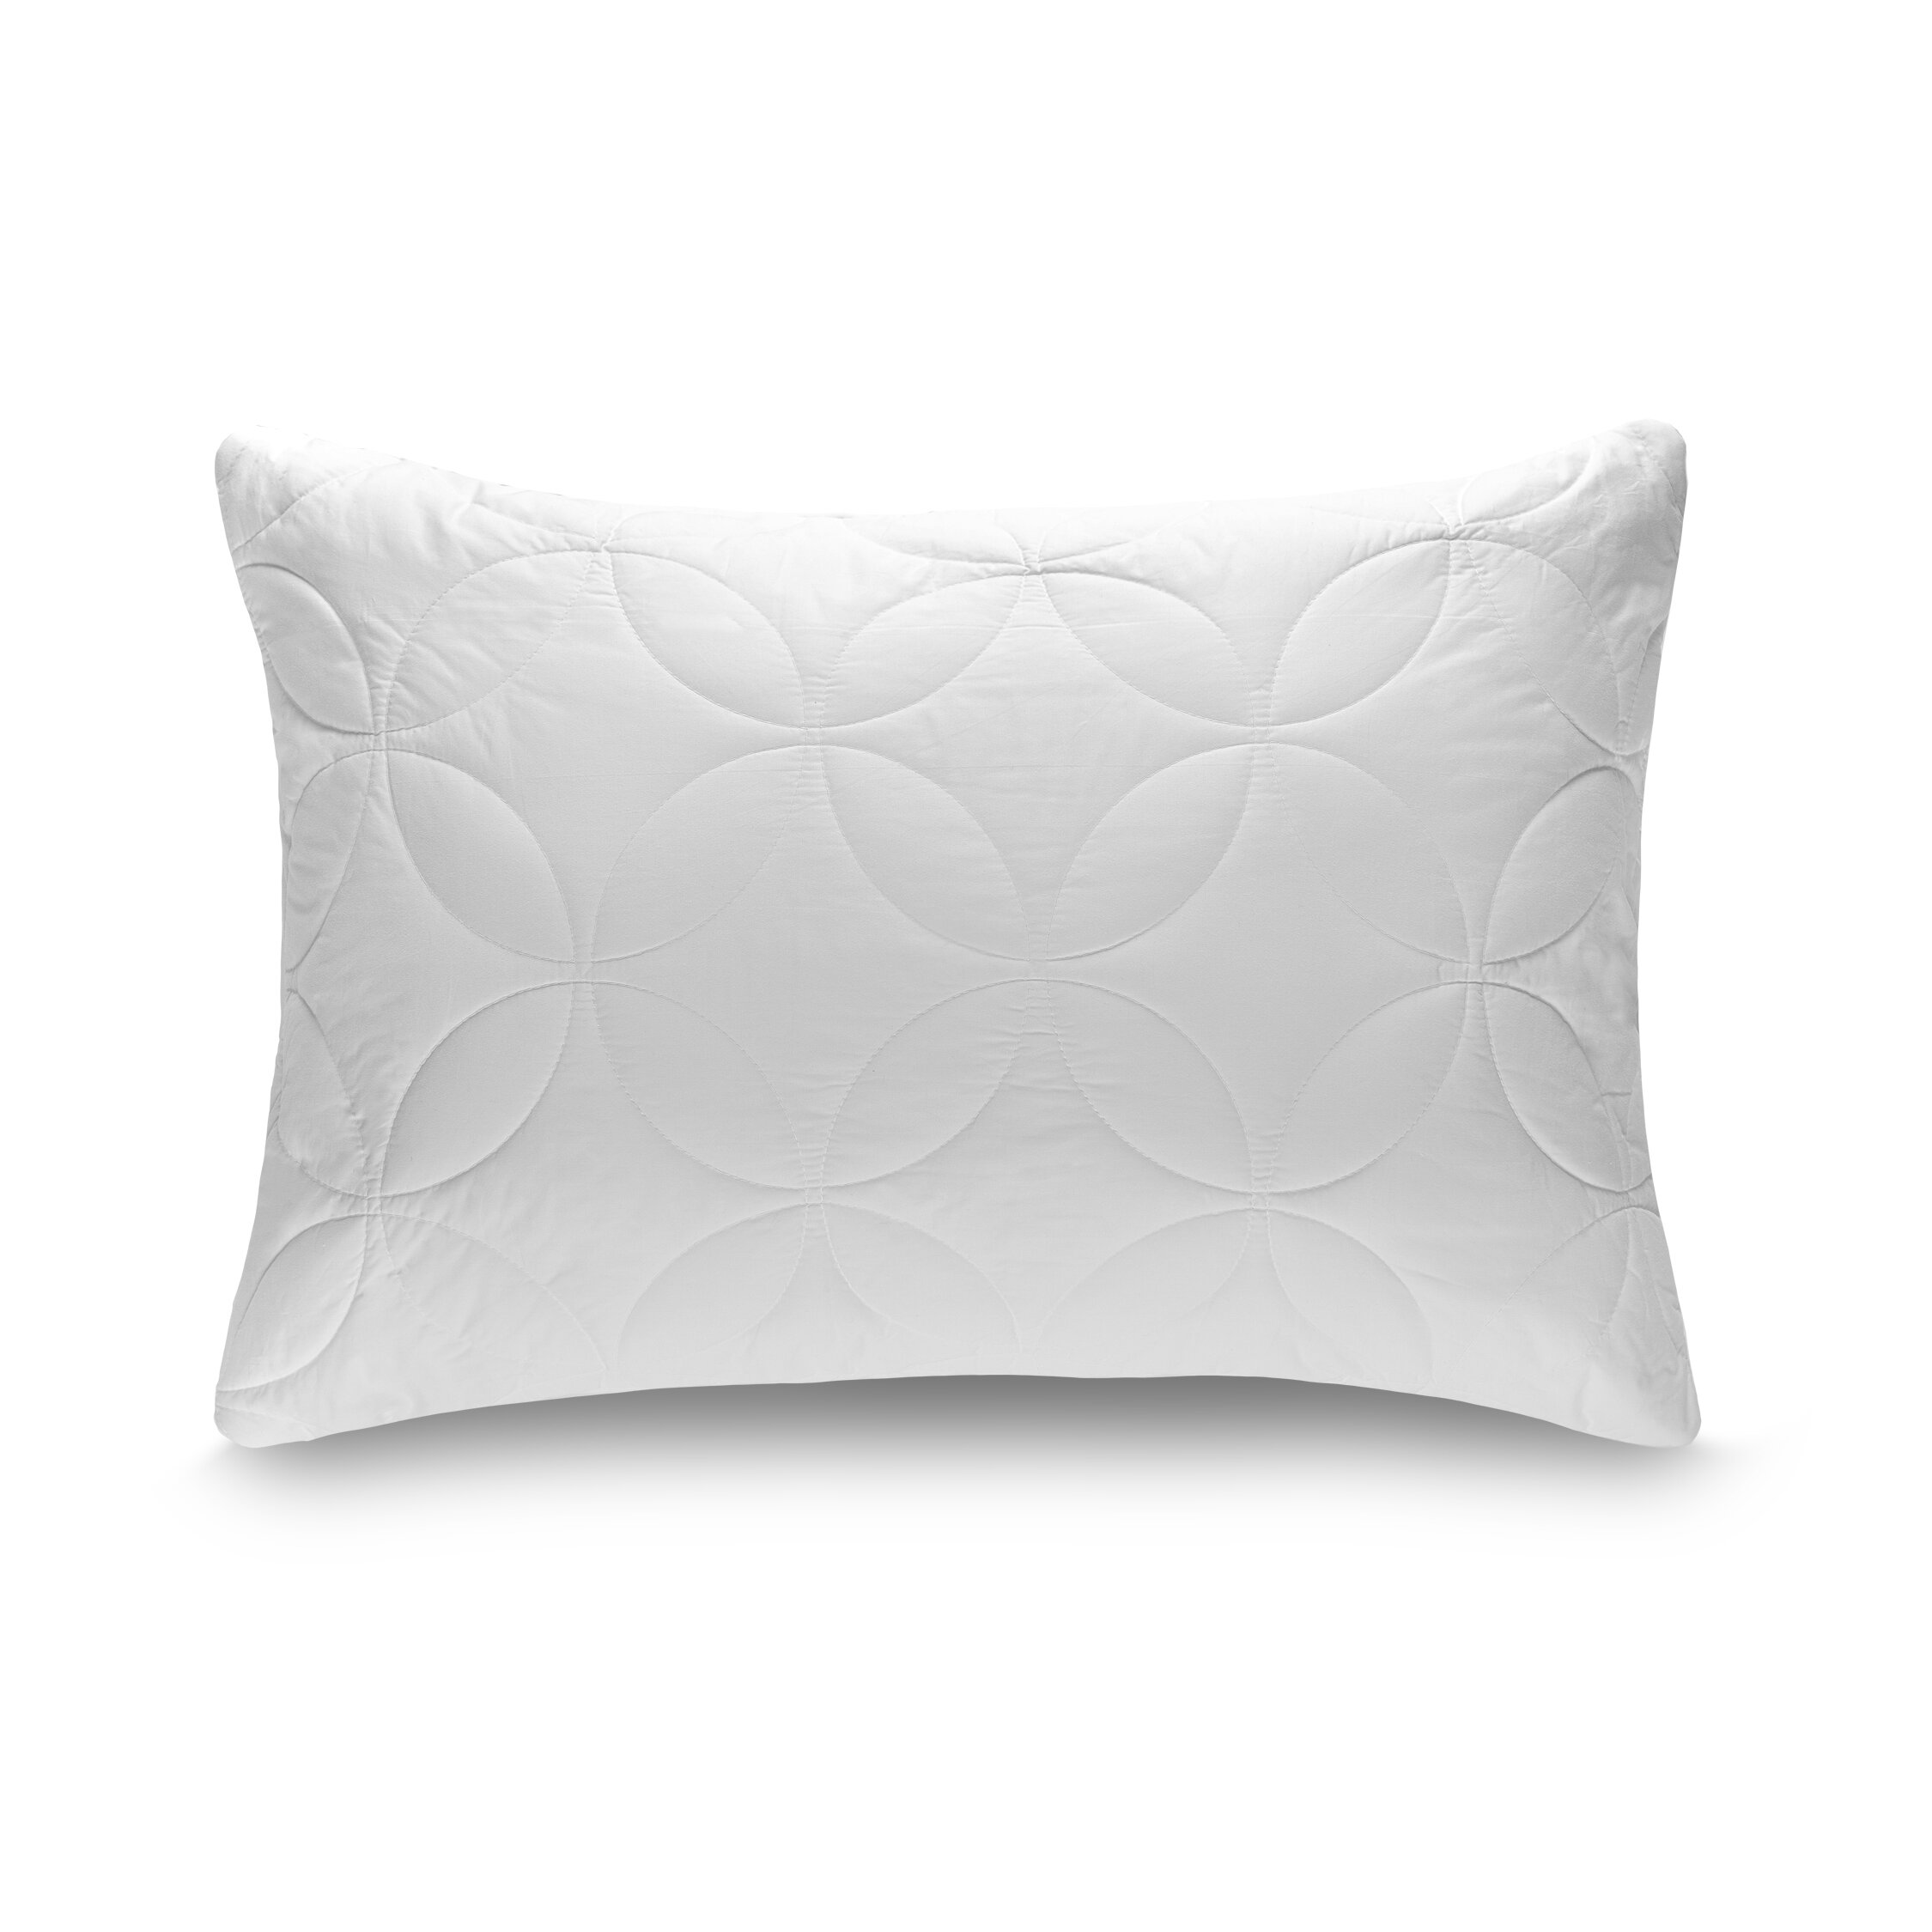 Tempur-Pedic Cloud Soft & Lofty Pillow & Reviews Wayfair